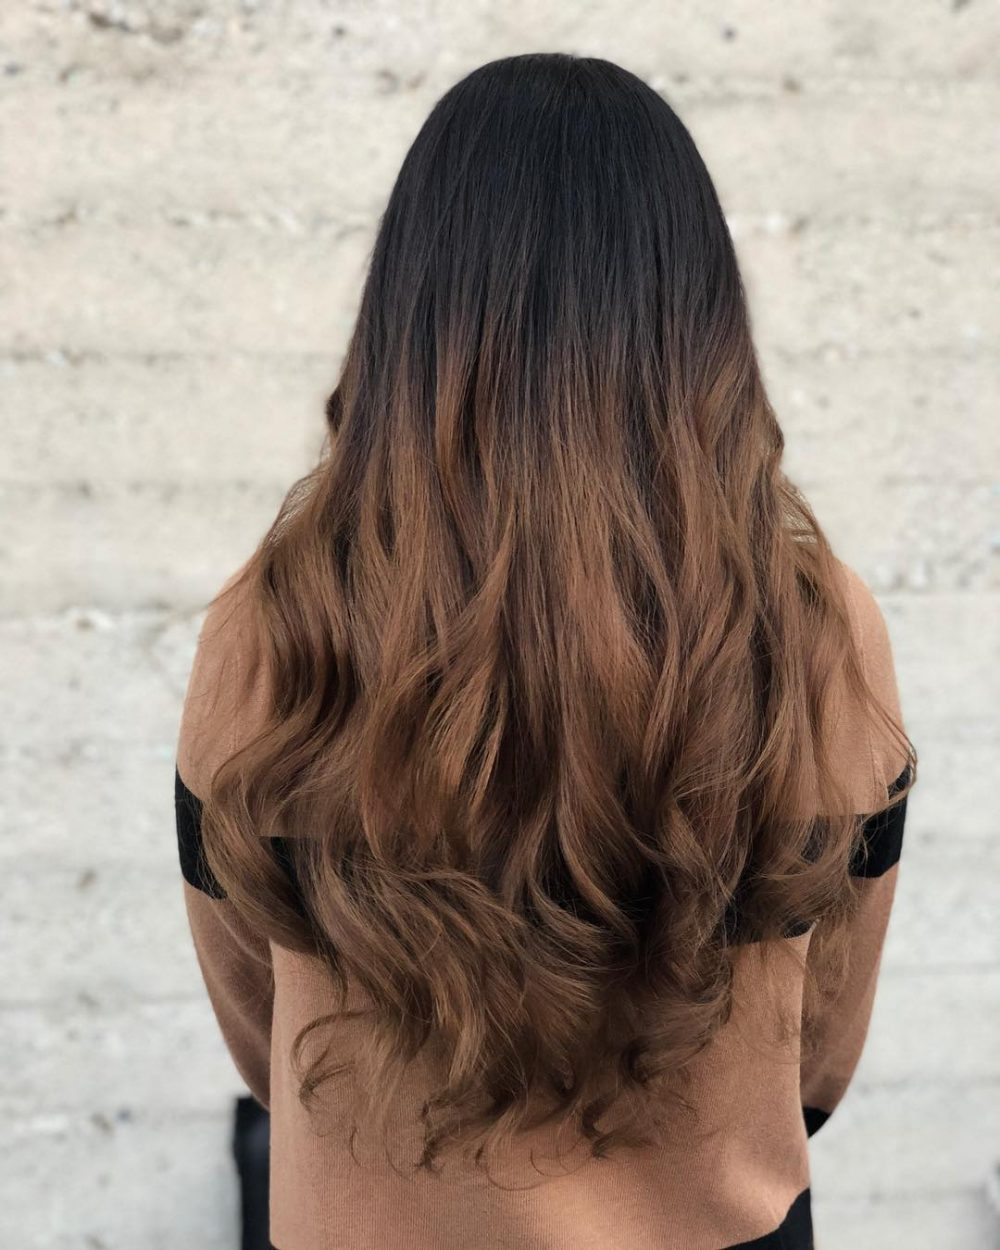 23 Long Ombre Hair Ideas Blowing Up In 2021